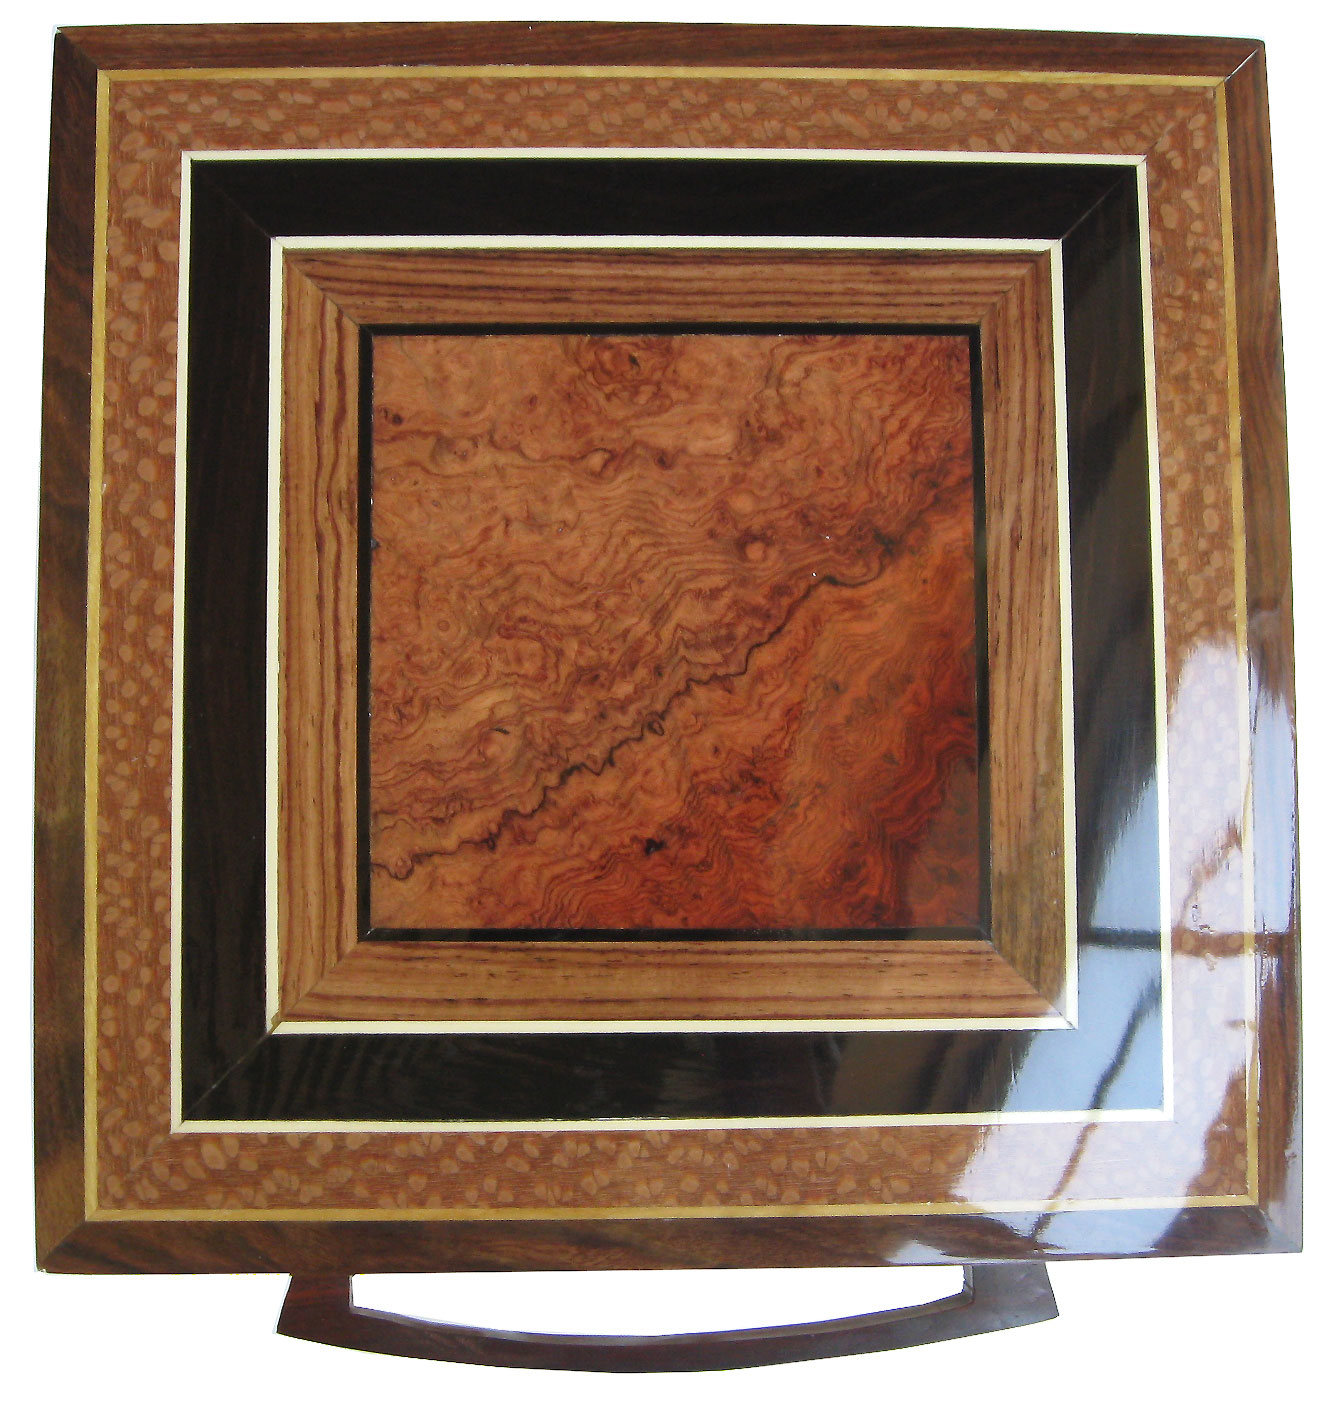 Amboyna burl center framed in Honduras rosewood, African blackwood and lacewood with ebony, holly and satinwood strings box top - Handmade large wood keepsake box